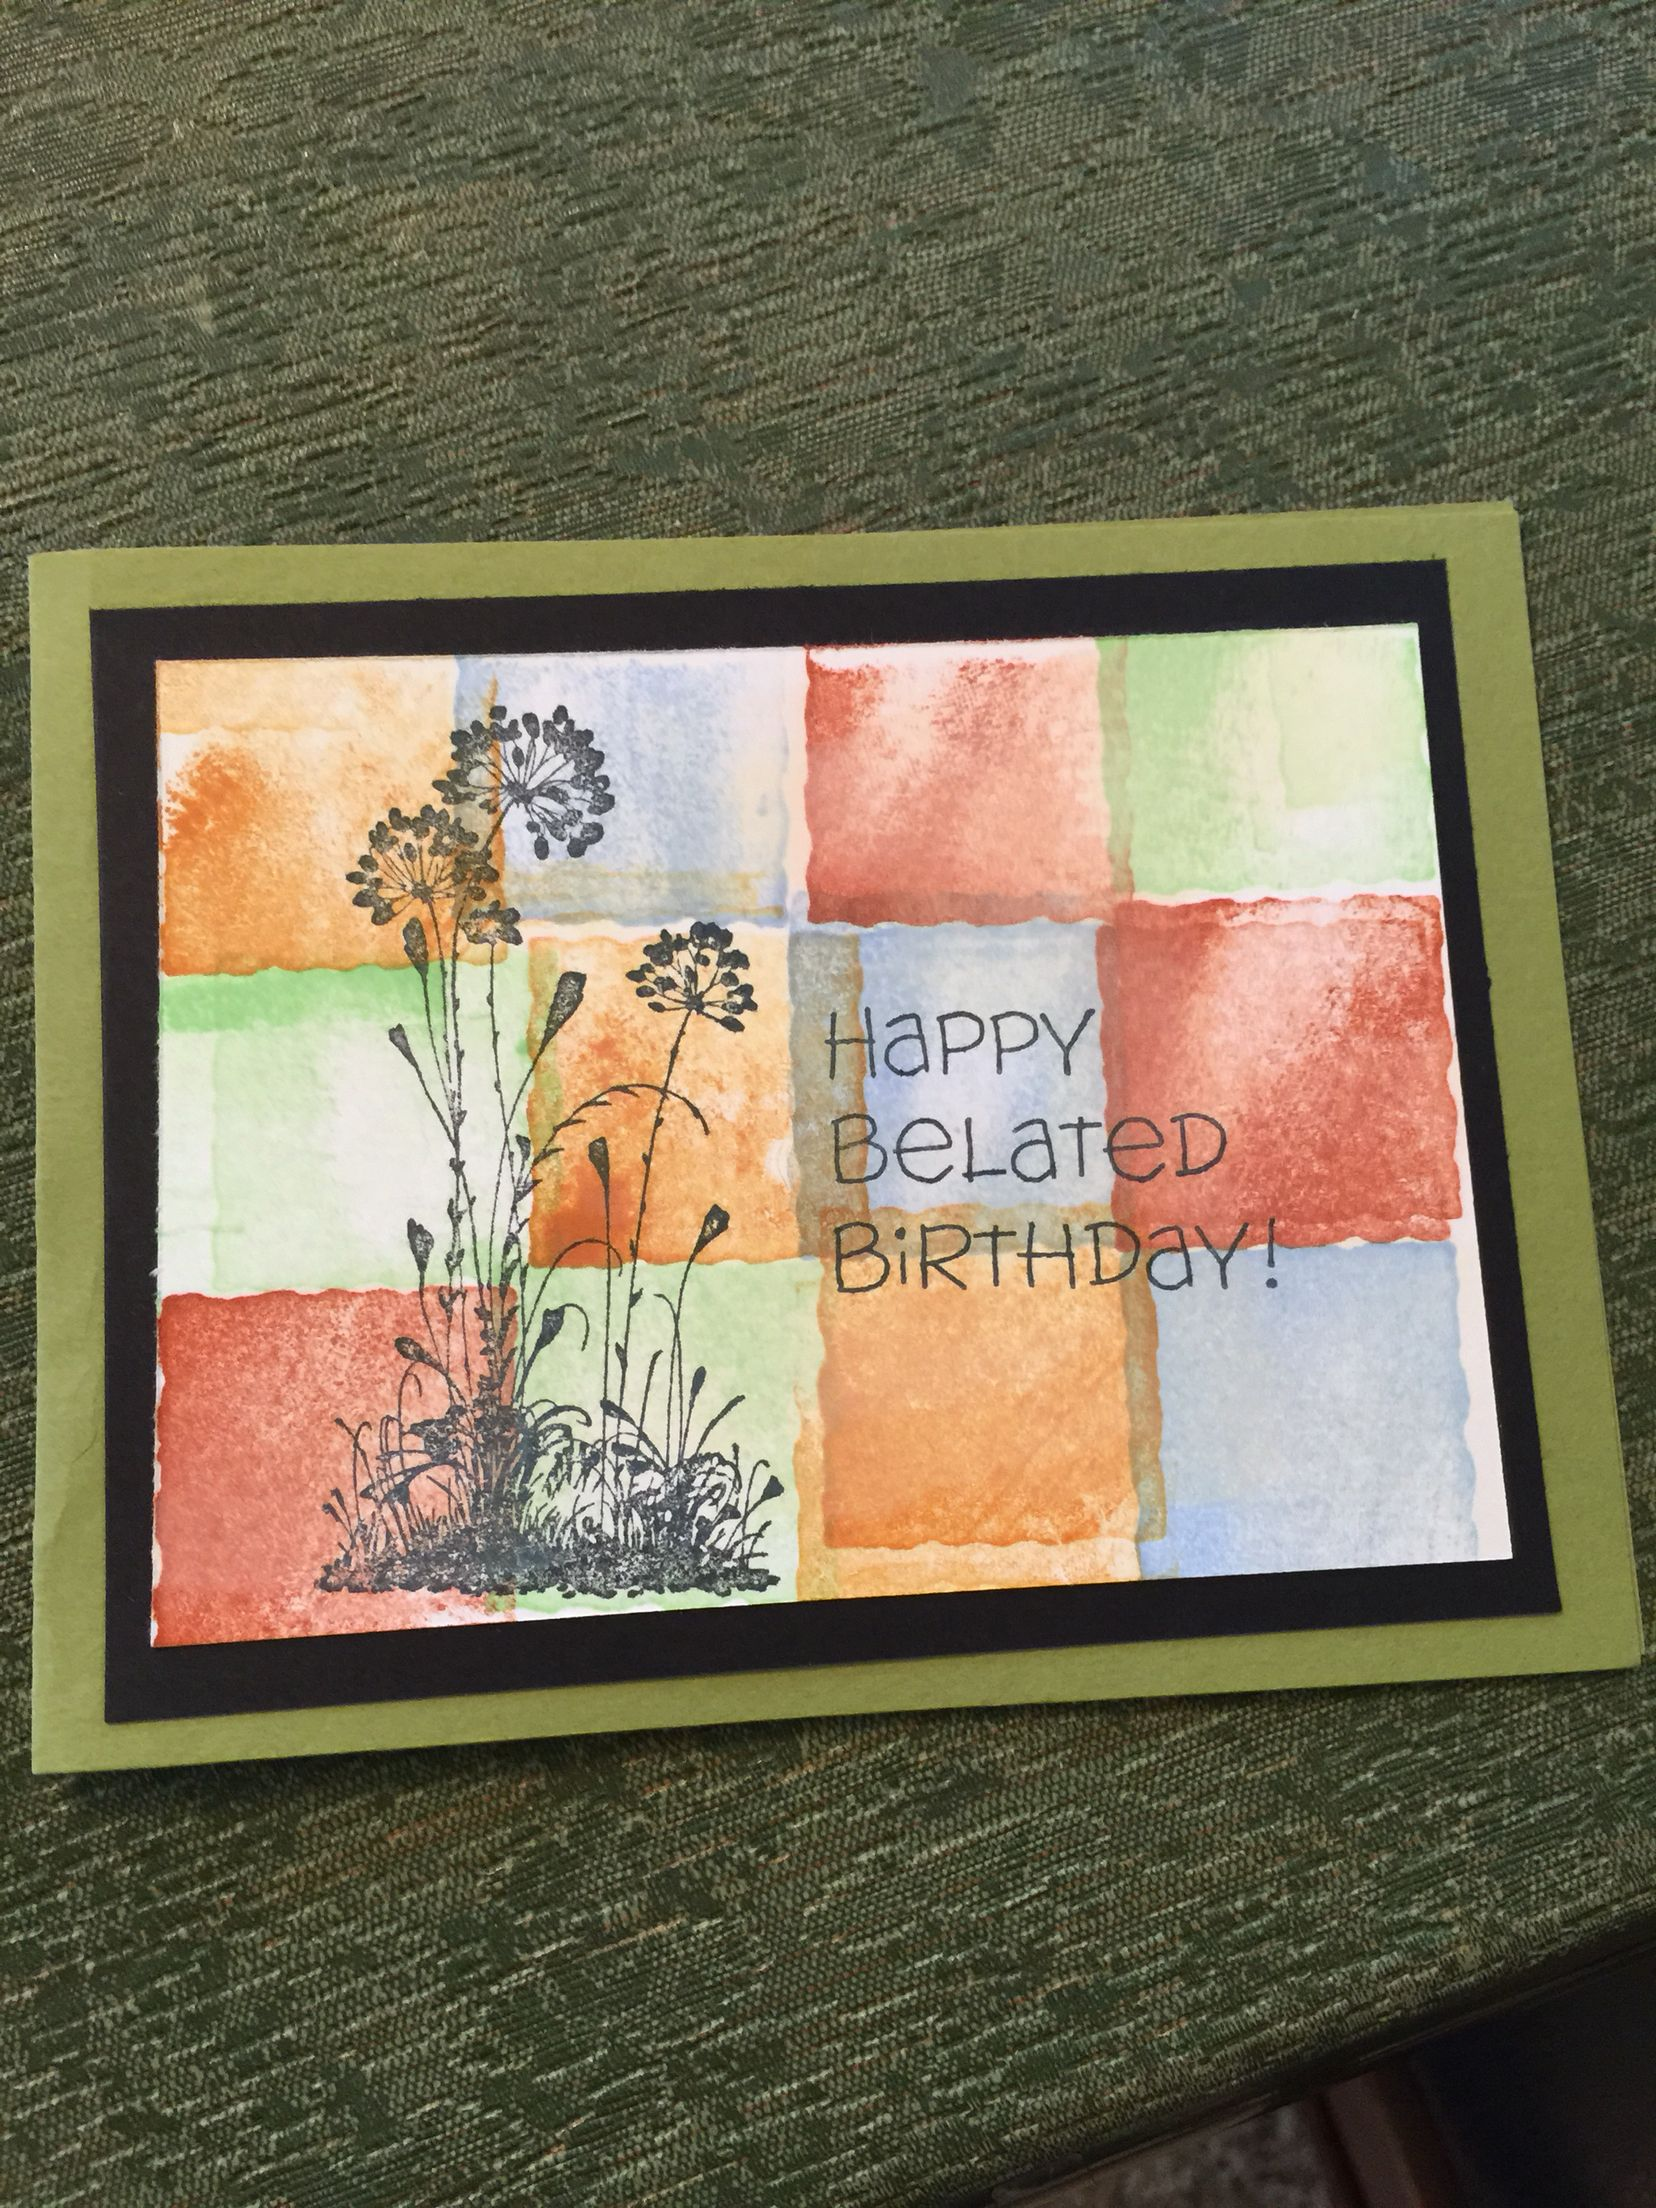 Happy belated birthday using 'Little shapes' and 'Serene Silhouettes' stamps from Stampin' Up